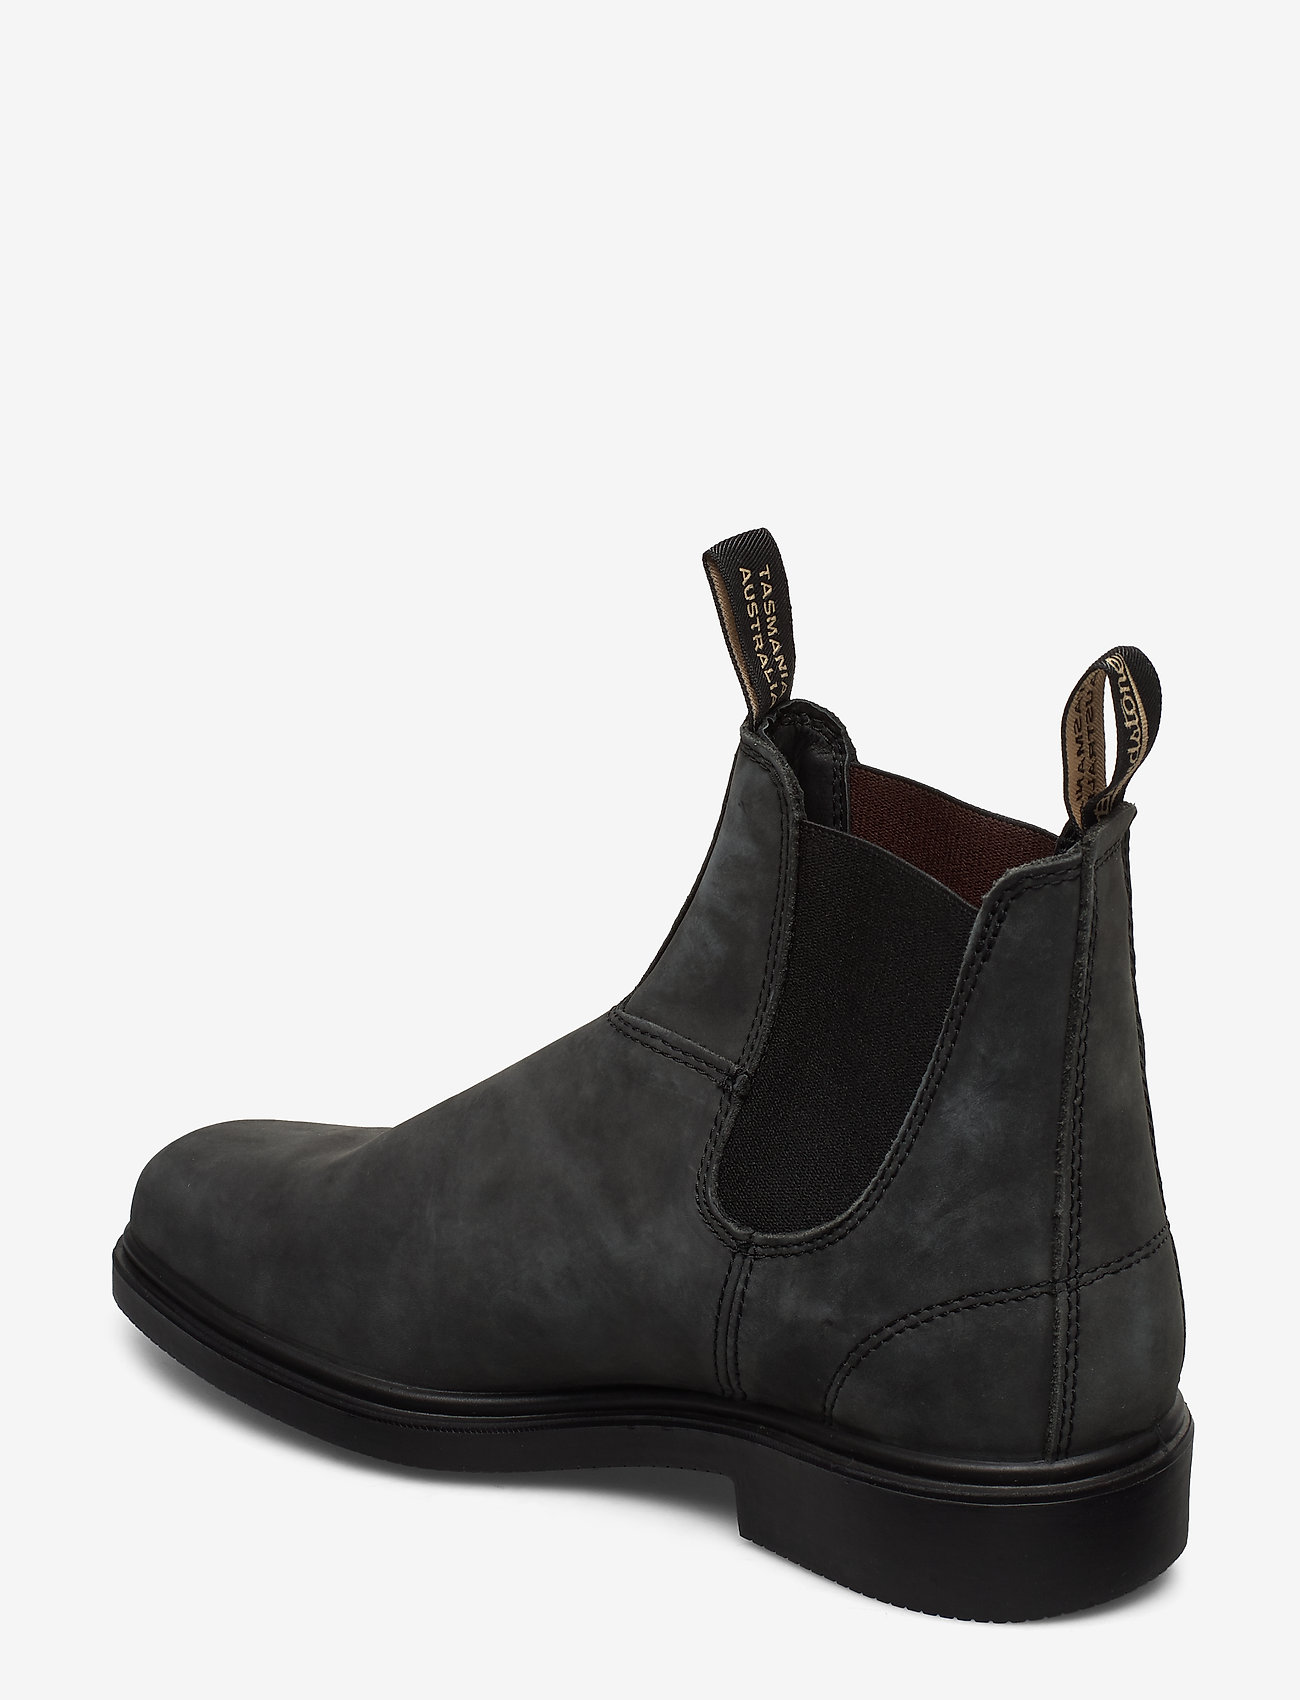 Bl Dress Boots (Rustic Black) (1400 kr) - Blundstone